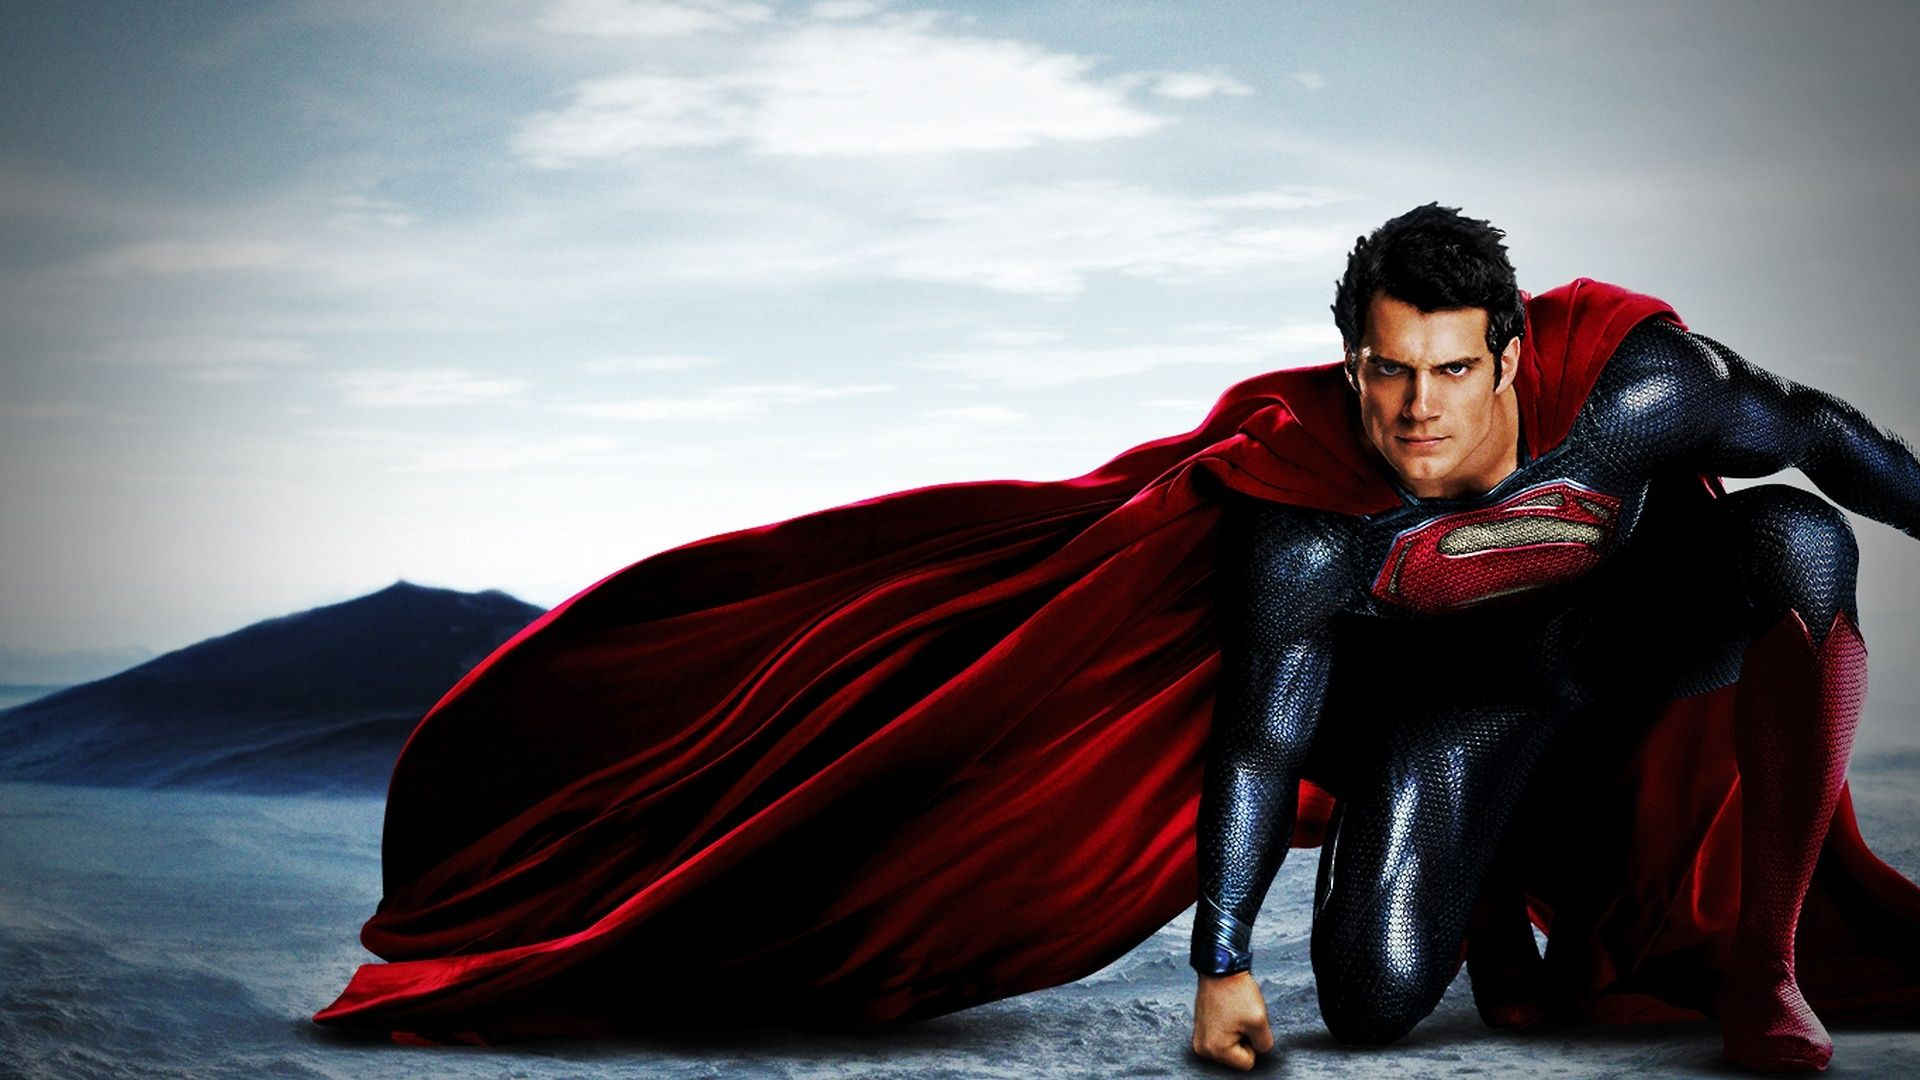 Man of Steel Poster 1080p HD Wallpaper Movies | lo ...